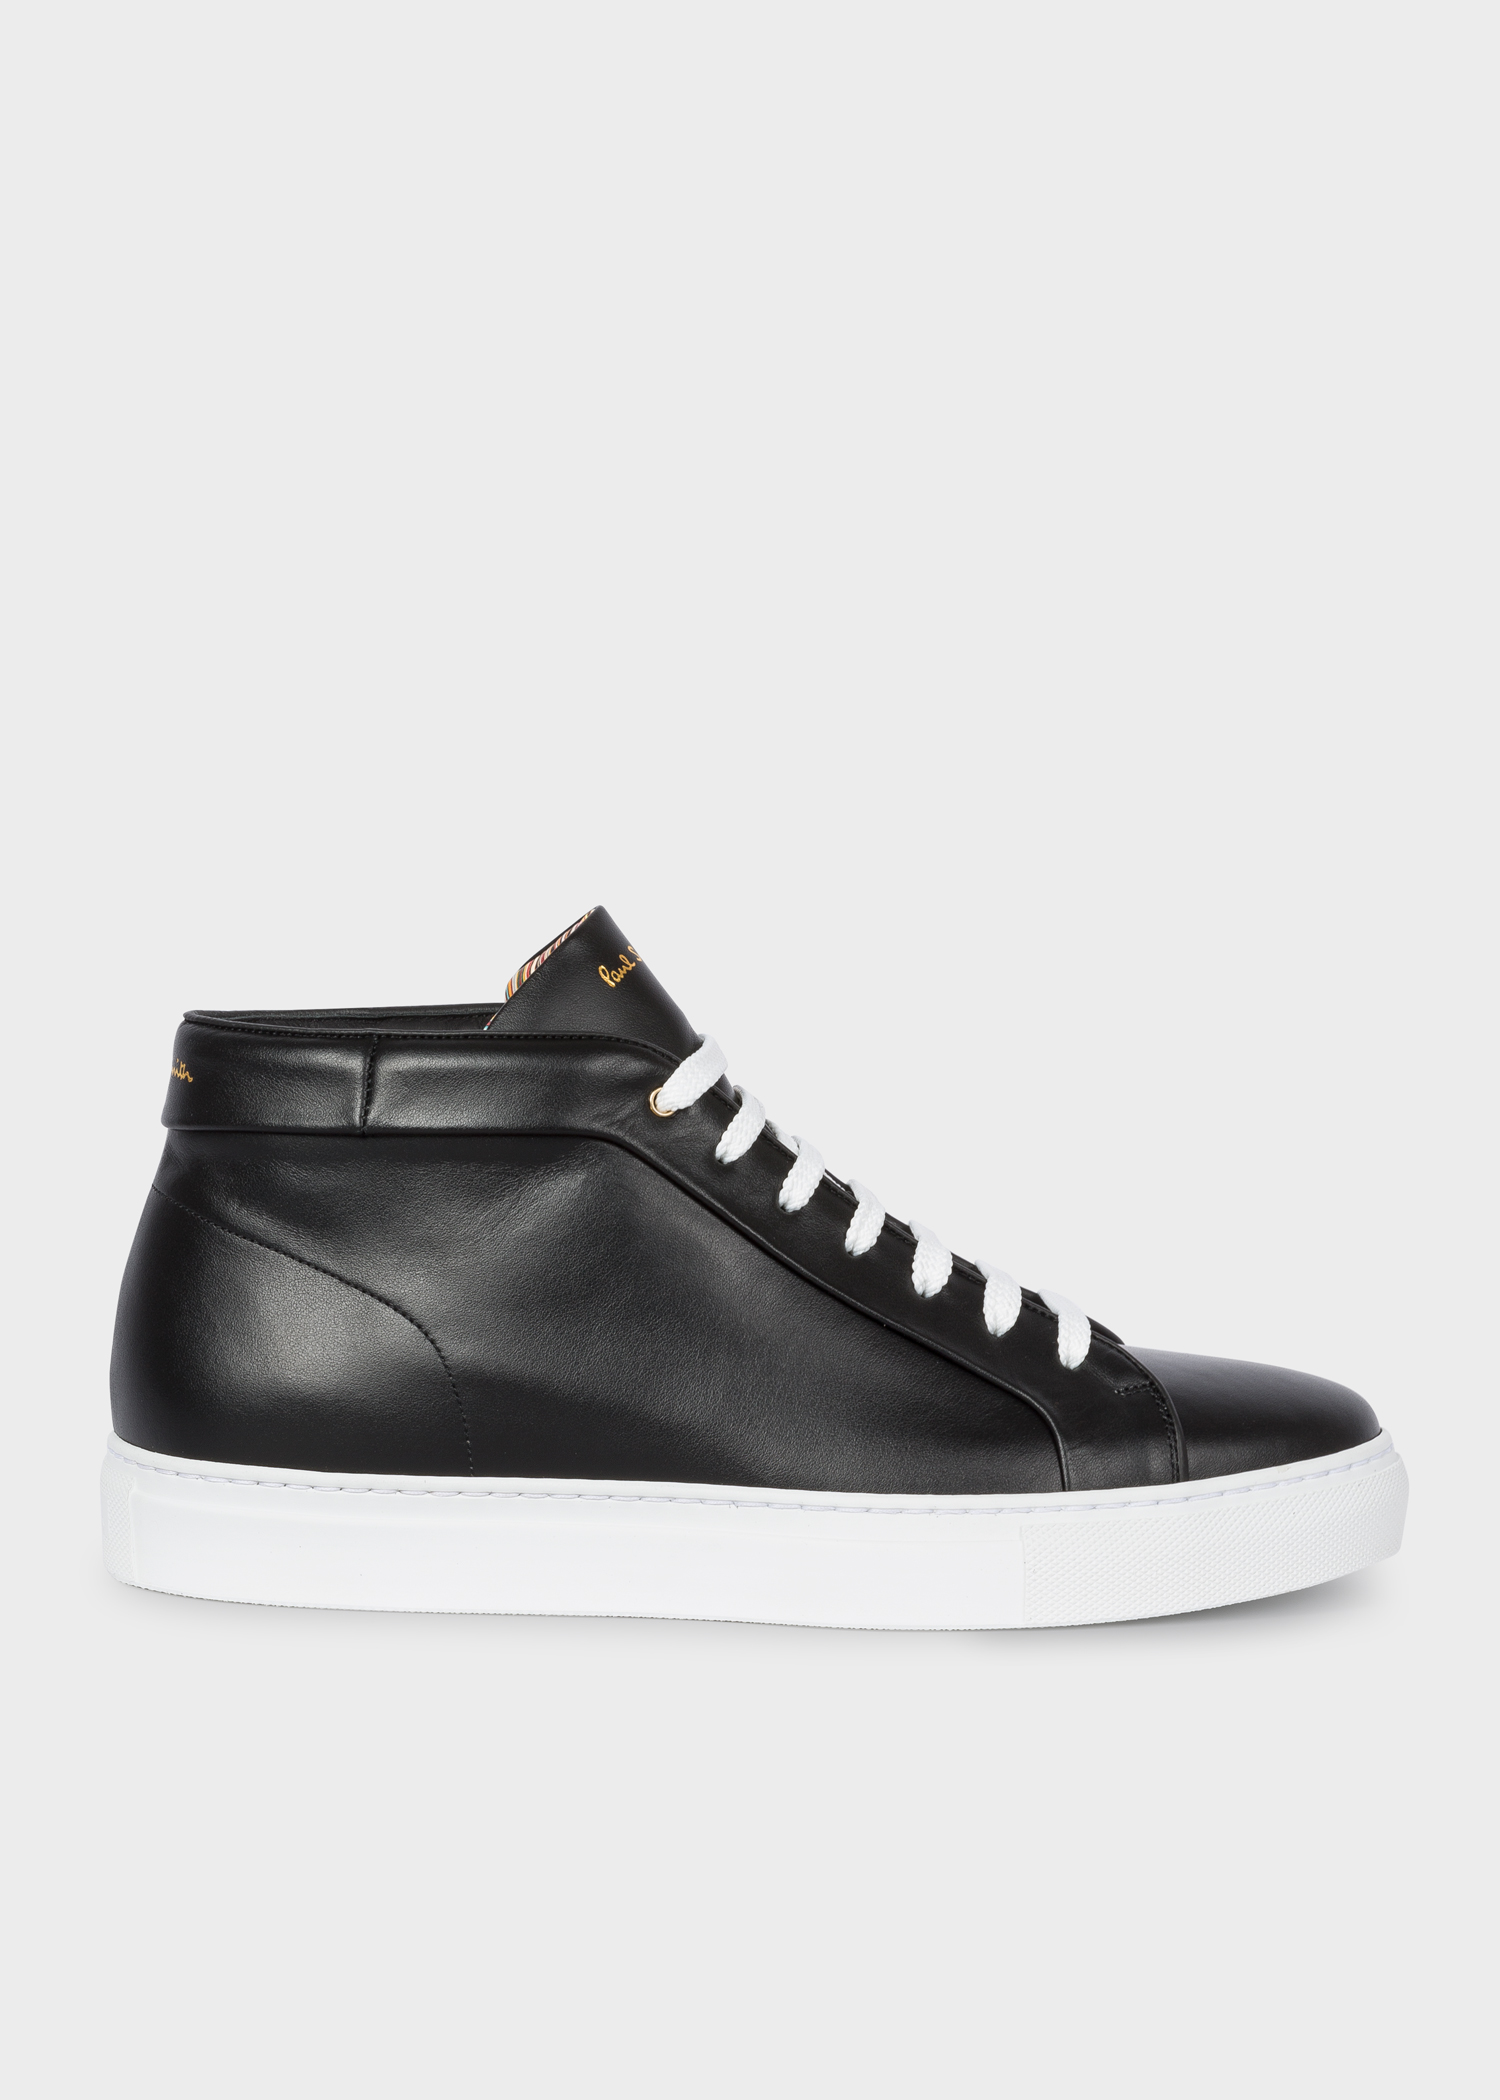 dfbb1e3f4 Side view - Men's Black Leather 'Ace' High-Top Trainers Paul Smith